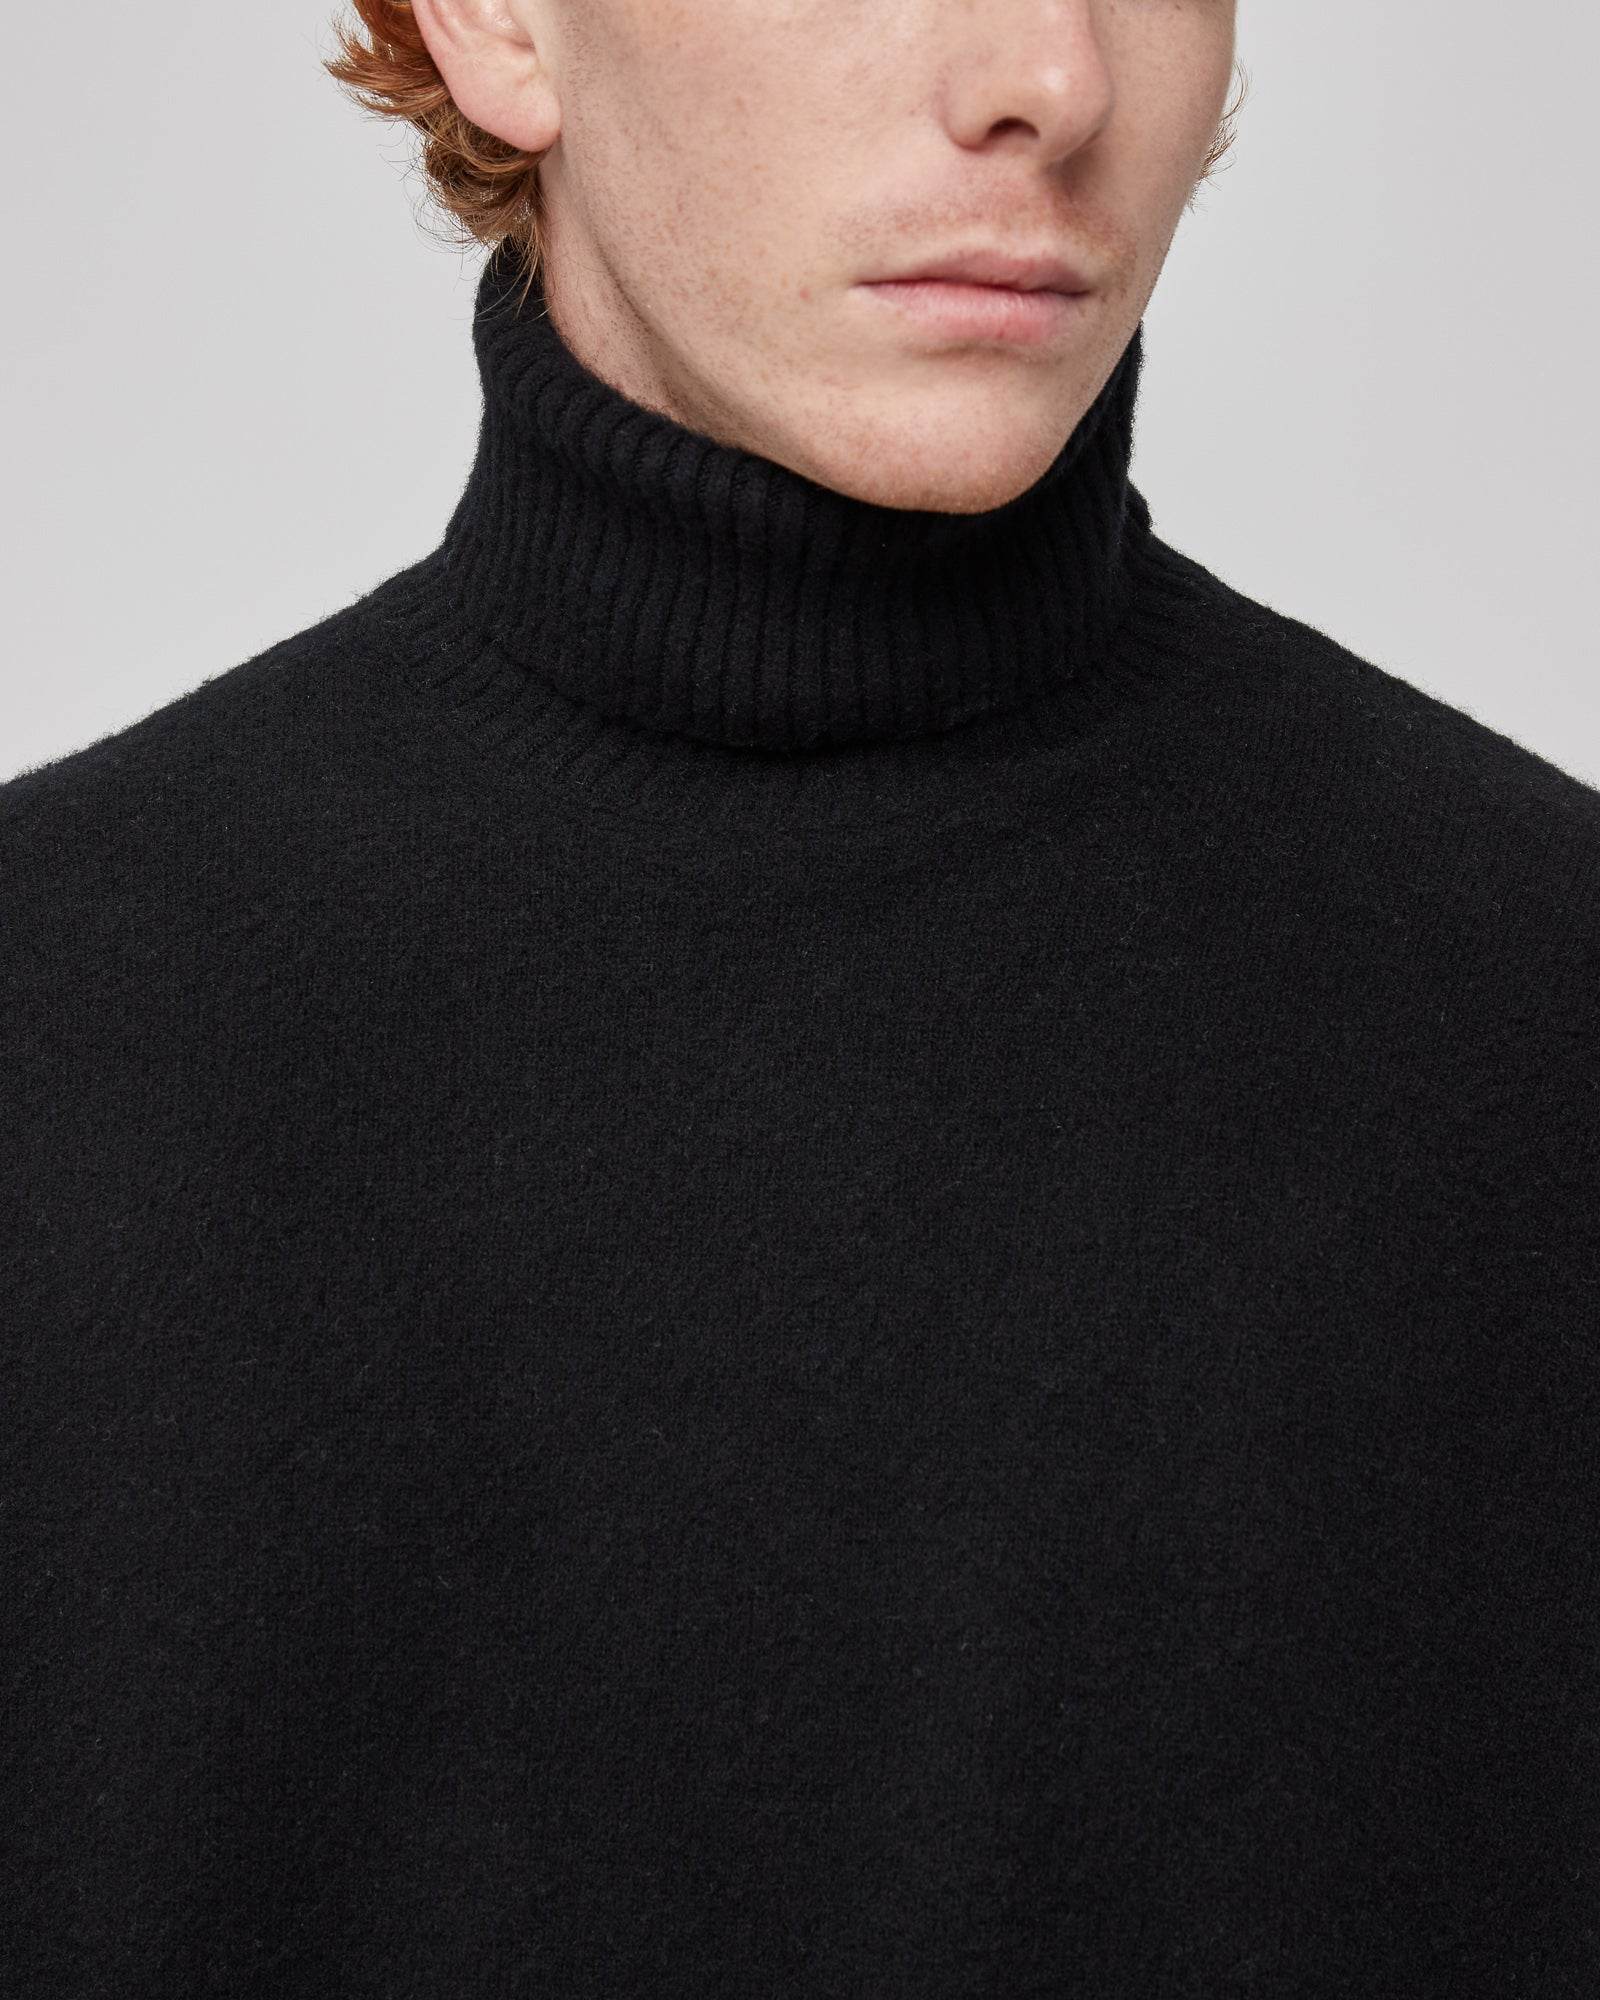 Whistler Rollneck Sweater in Black